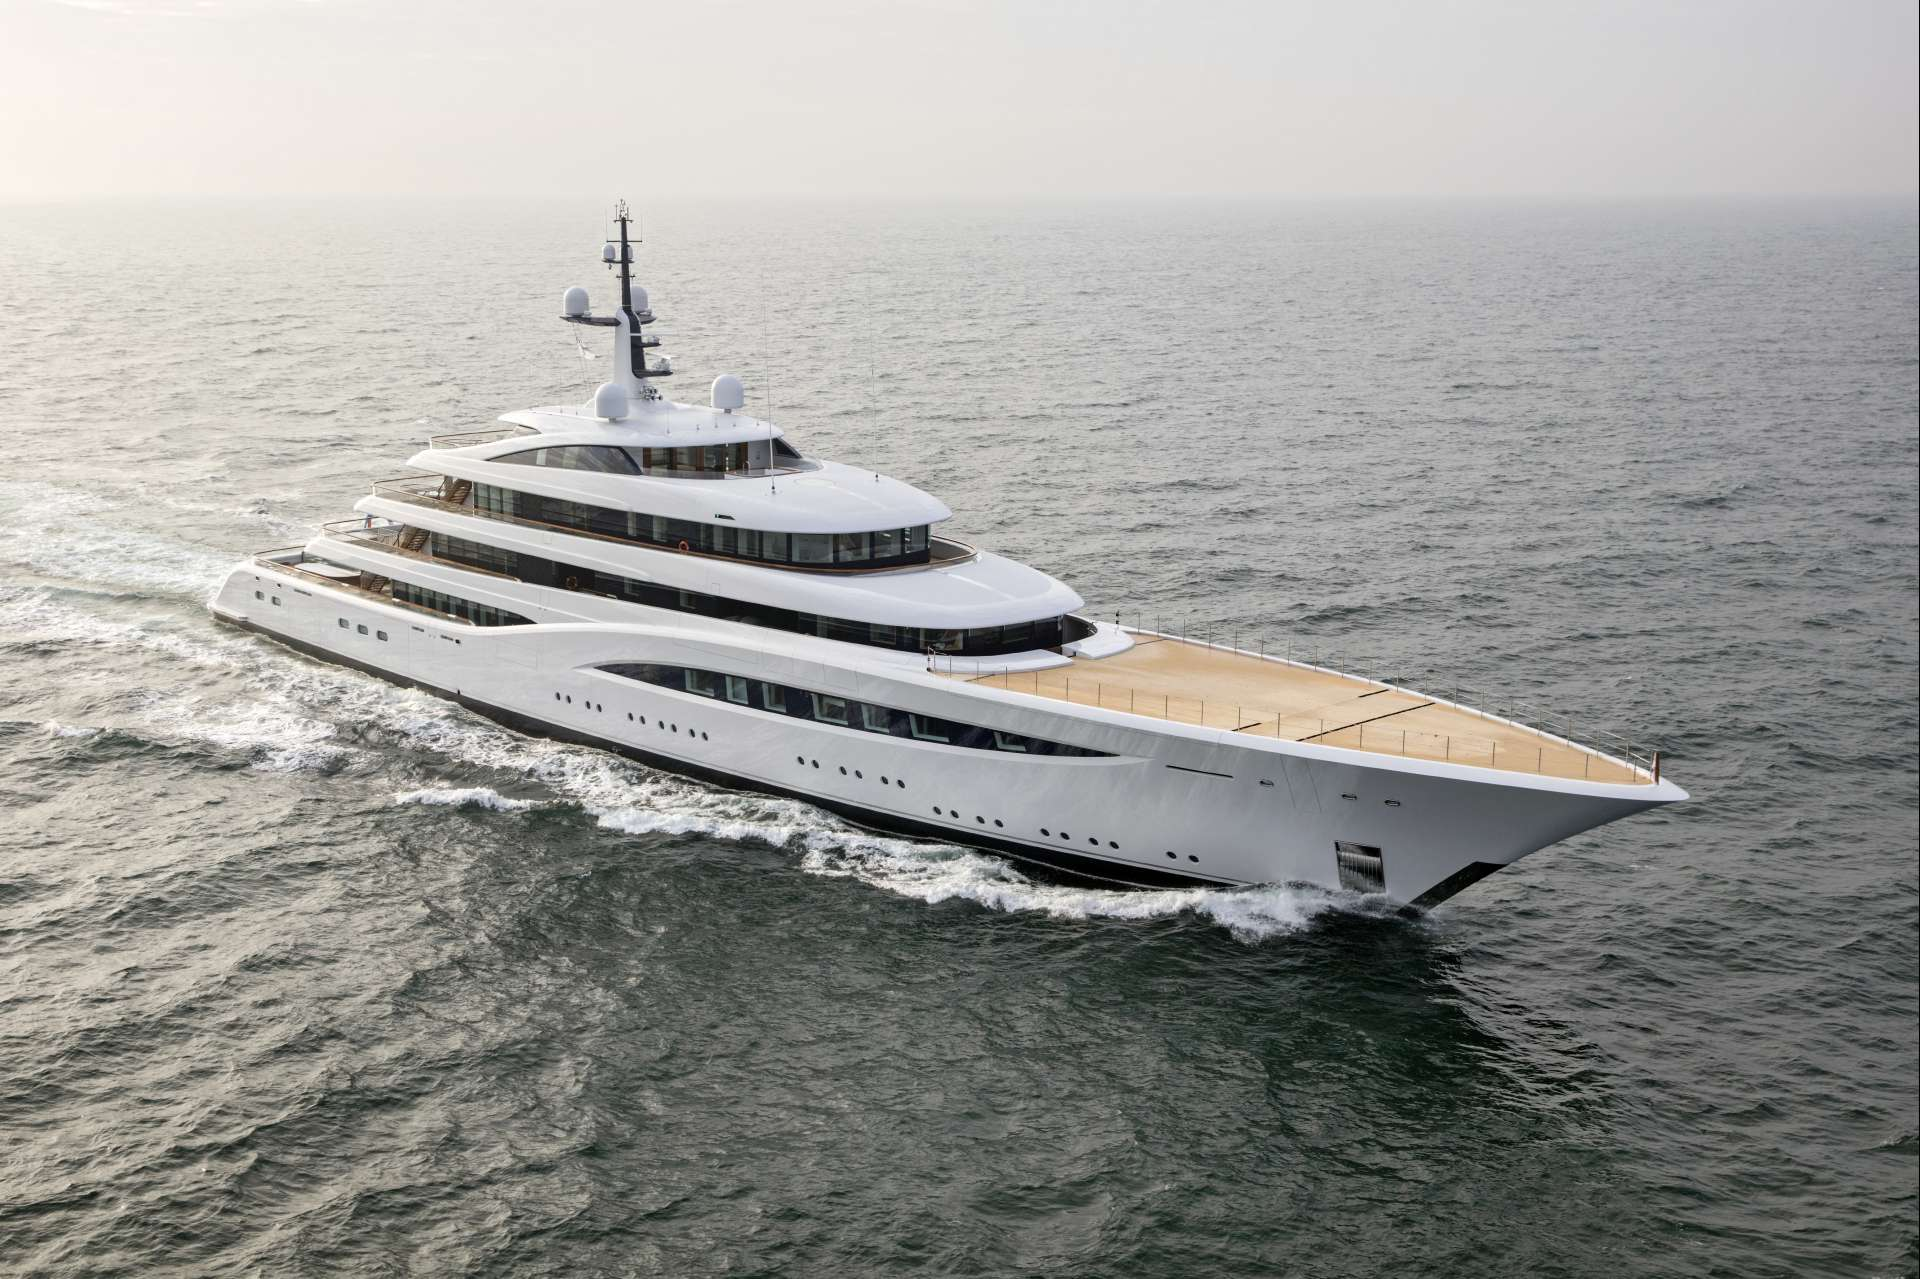 Faith Feadship Royal Dutch Shipyards